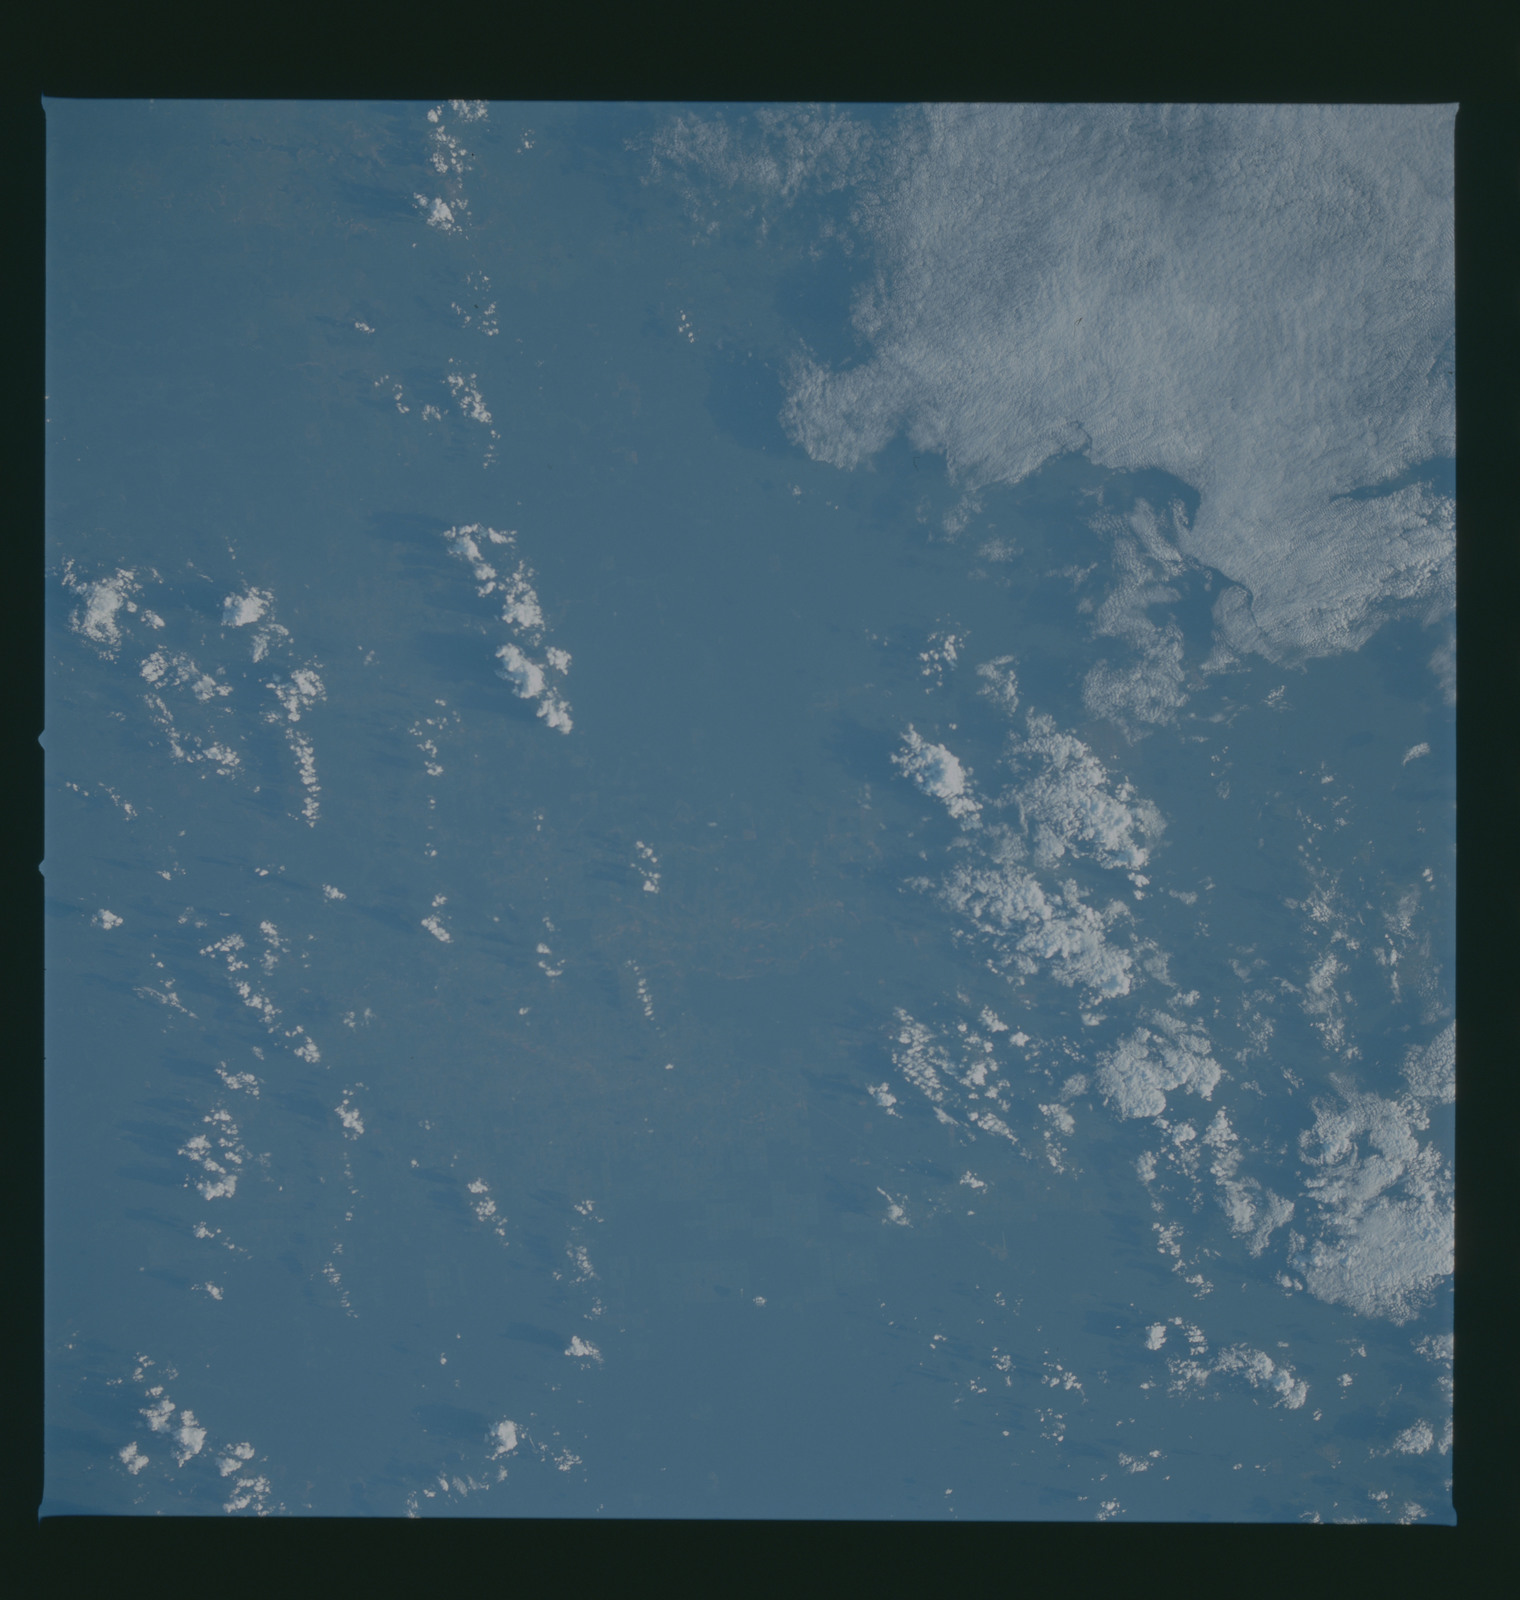 S37-96-064 - STS-037 - Earth observations taken from OV-104 during STS-37 mission